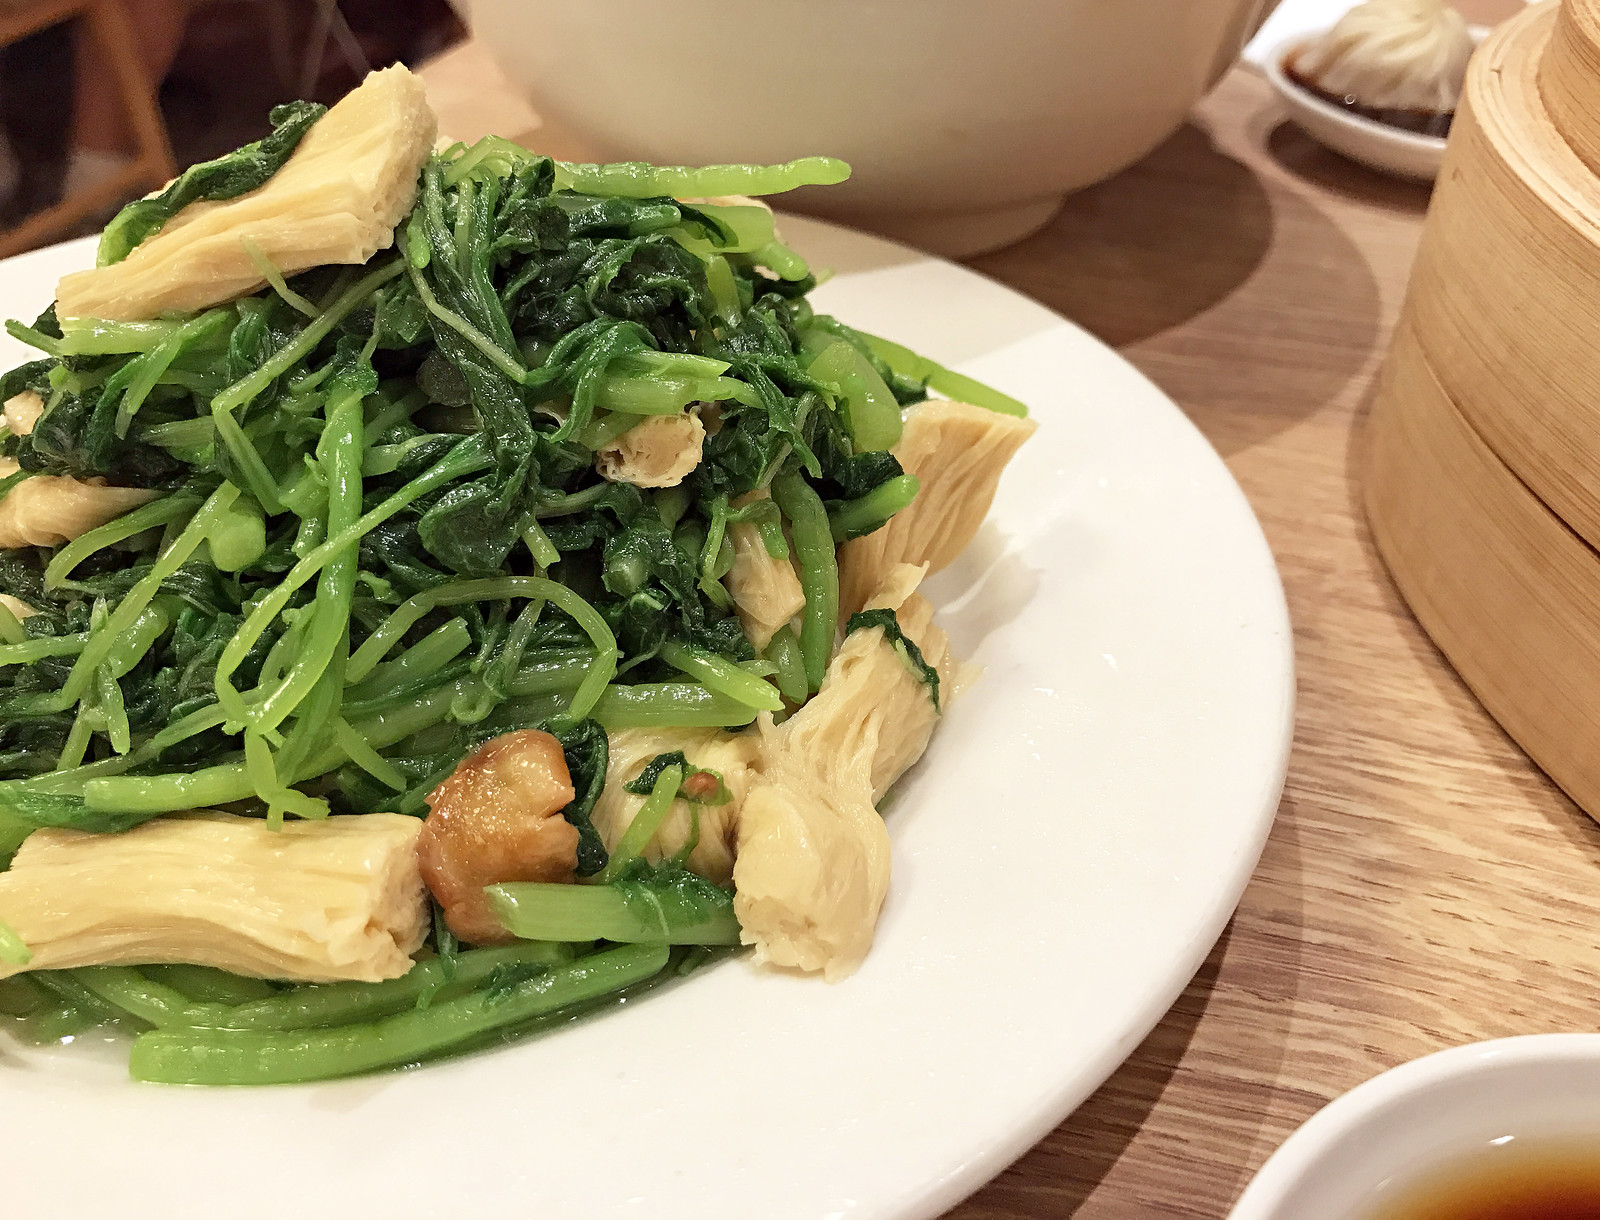 Stir-fried amaranth greens with yuba